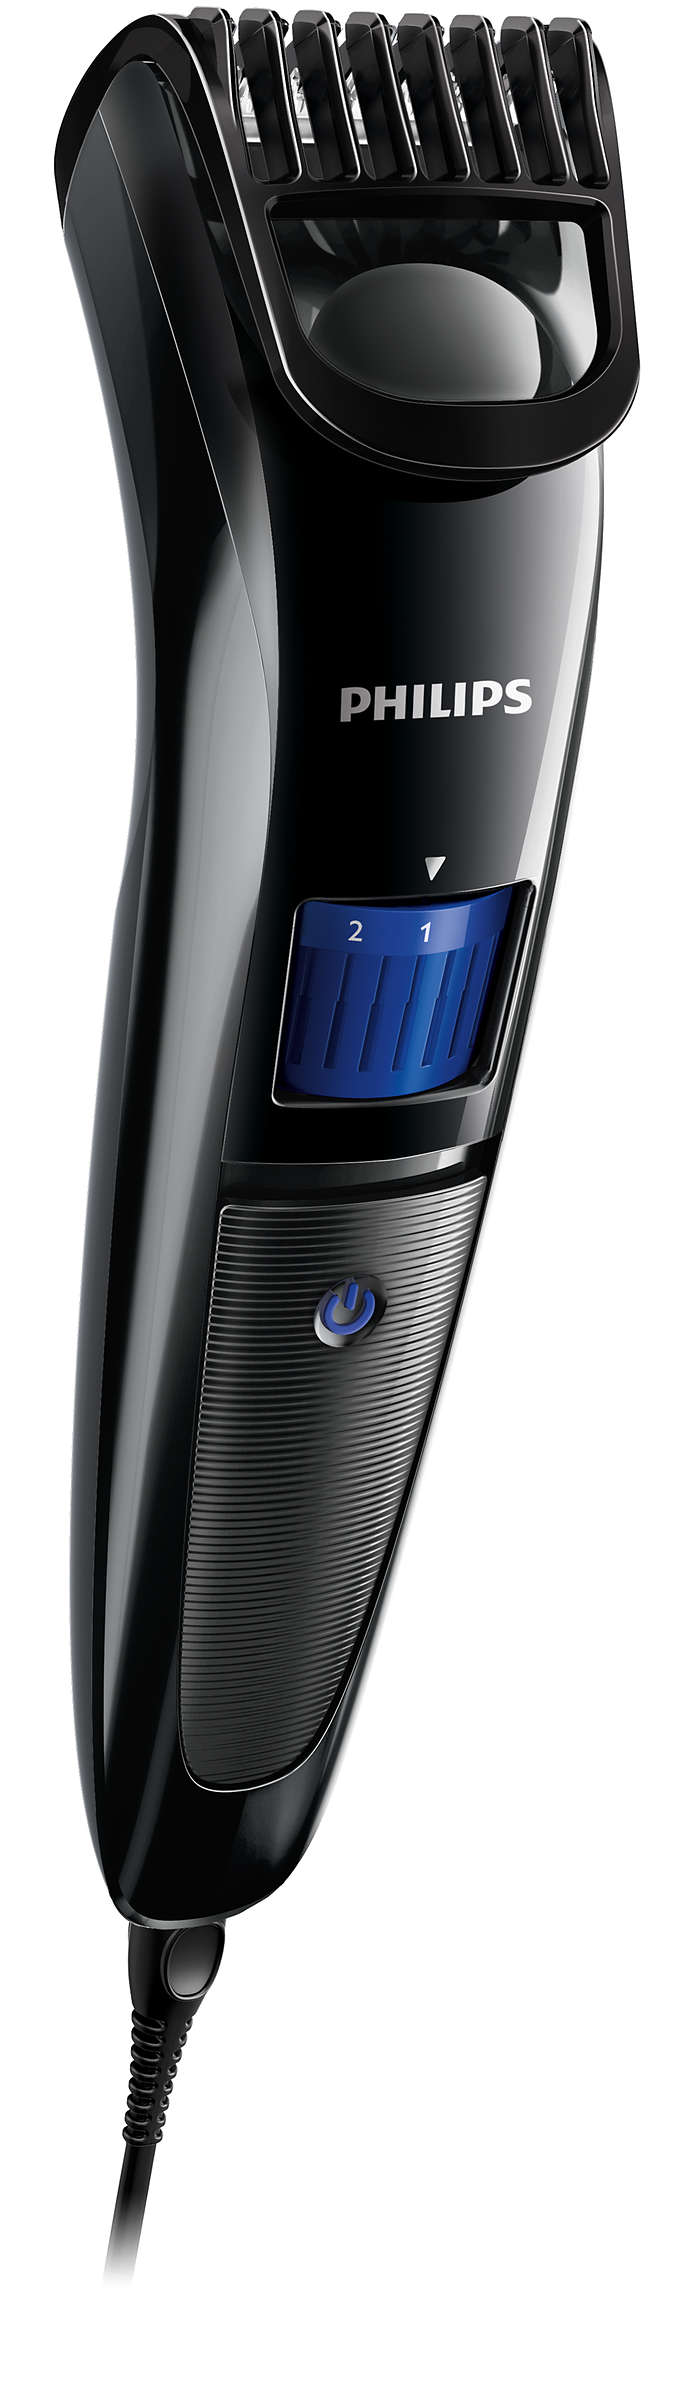 beard trimmer consumer reviews beardtrimmer series 5000 waterproof beard trimmer bt5260. Black Bedroom Furniture Sets. Home Design Ideas